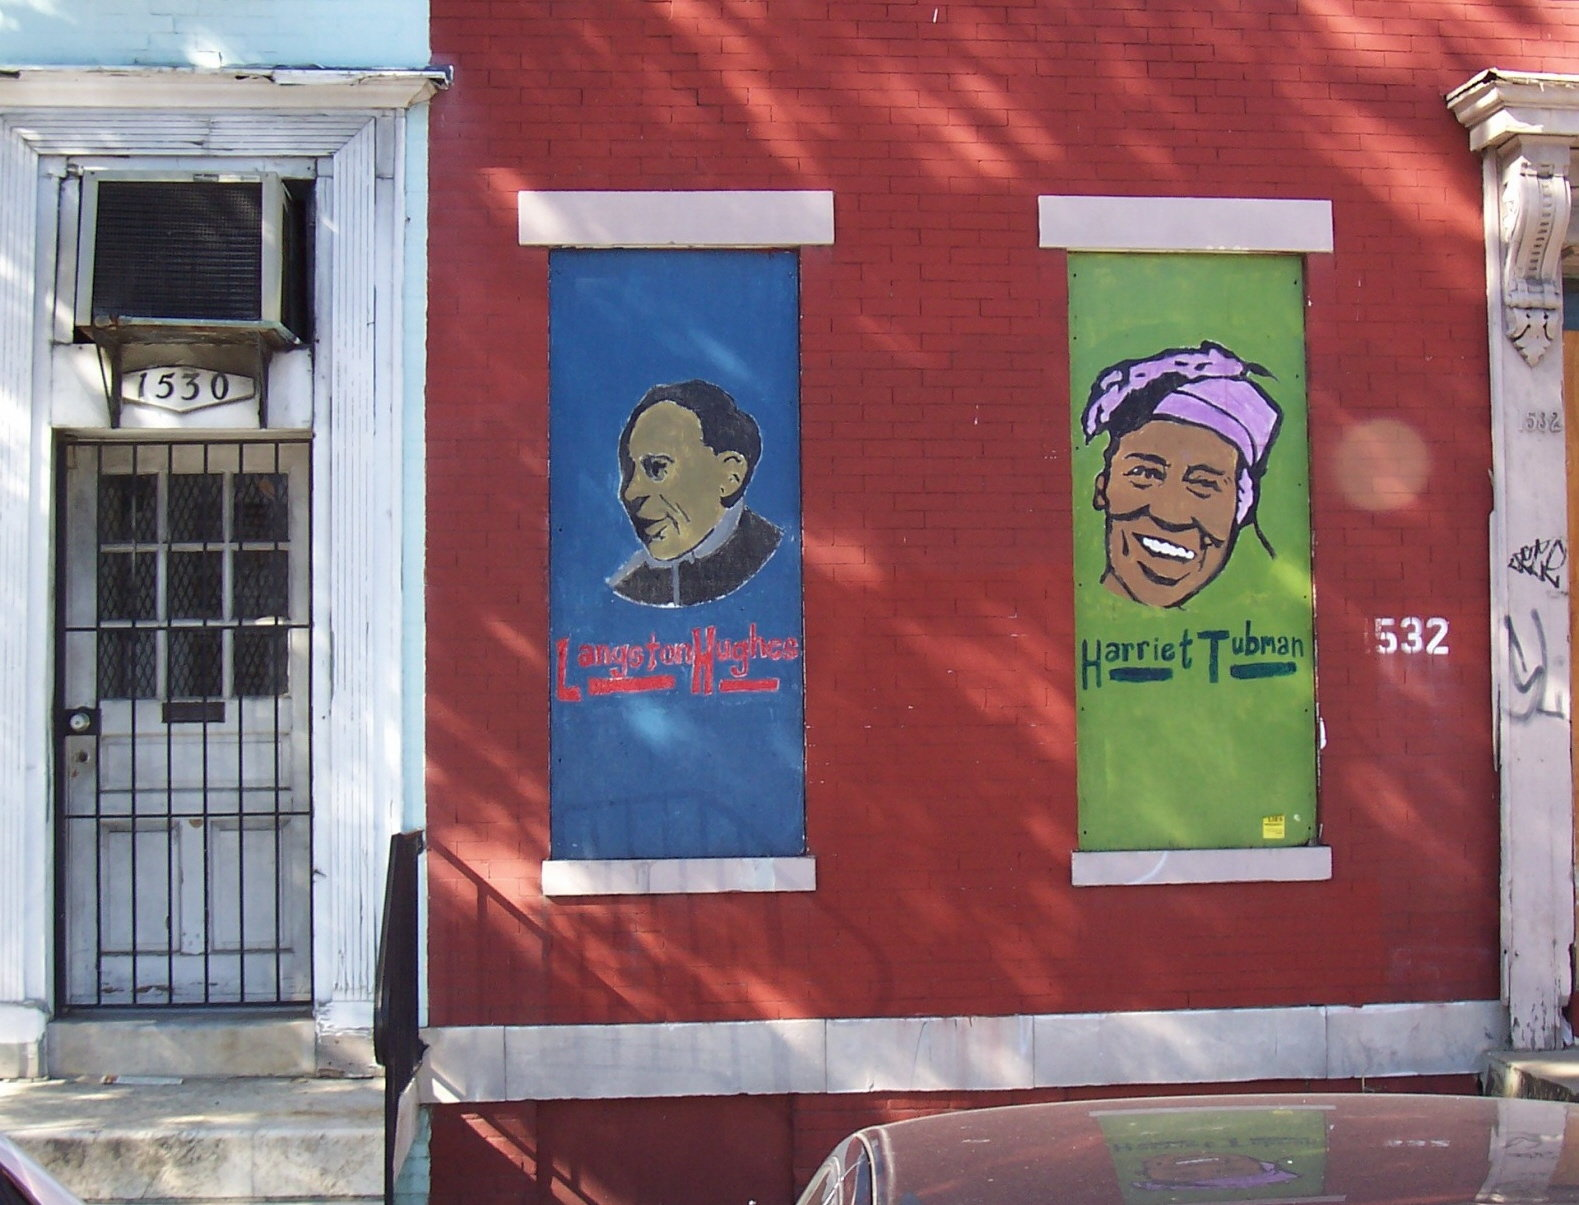 [Langston Hughes and Harriet Tubman portraits, P St. NW, Washington D.C.]